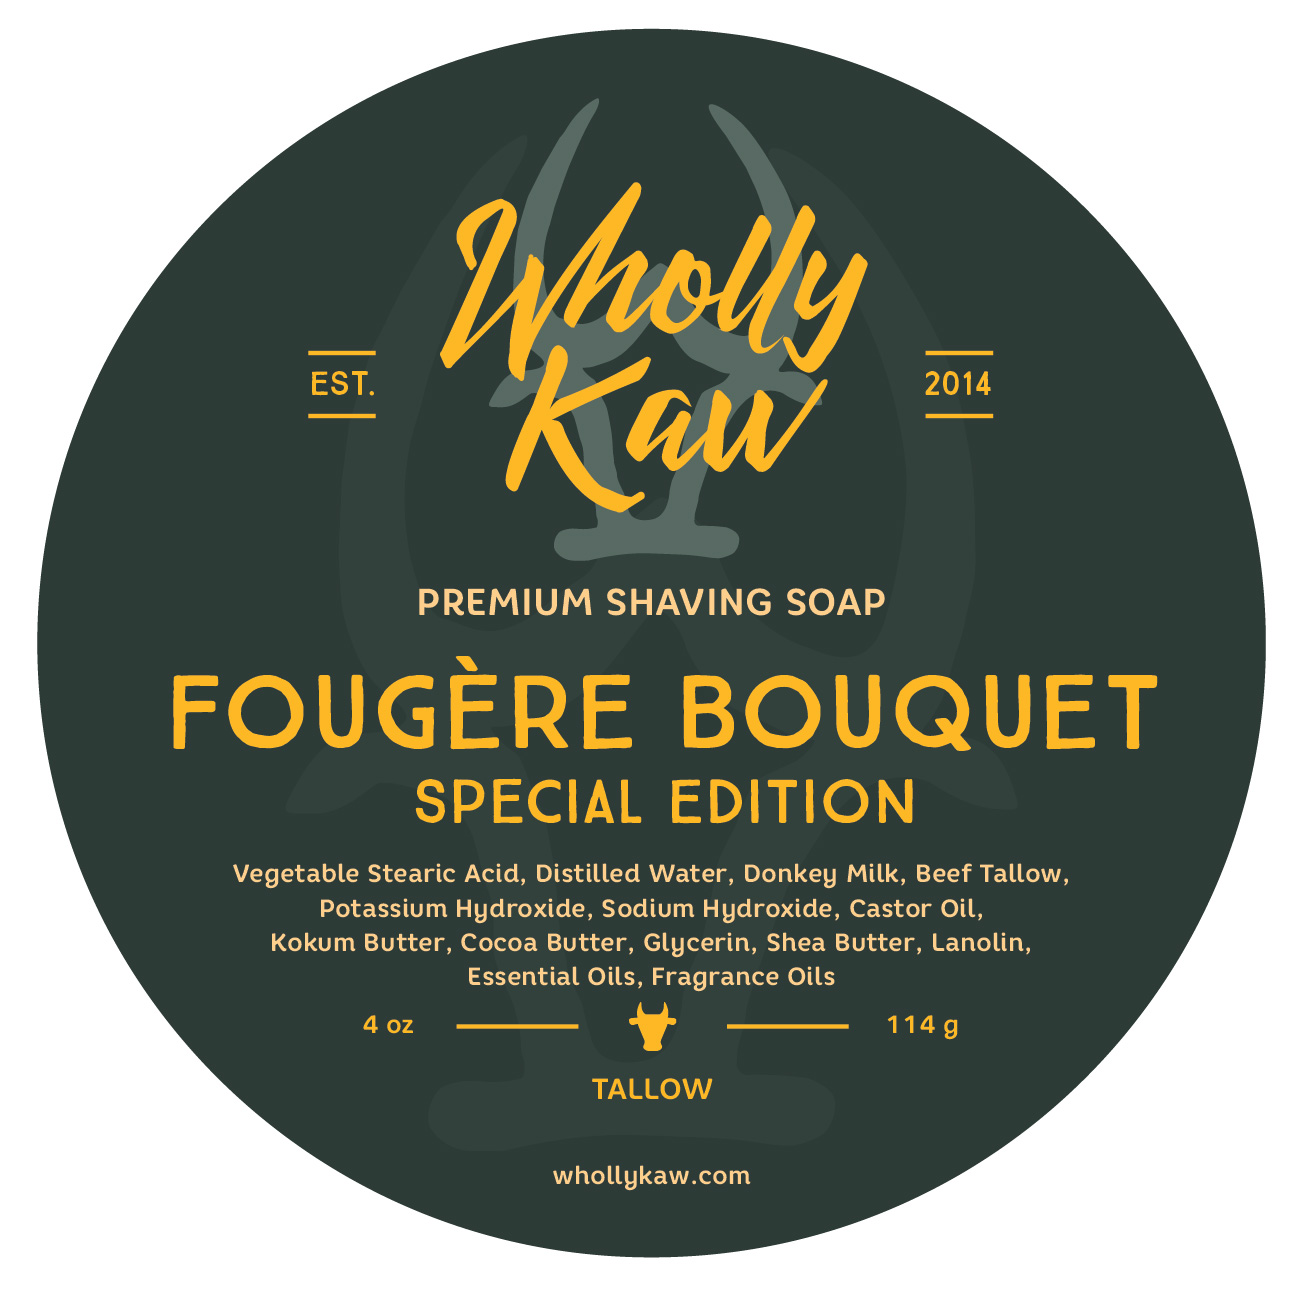 Wholly Kaw - Fougère Bouquet - Soap (LE) image